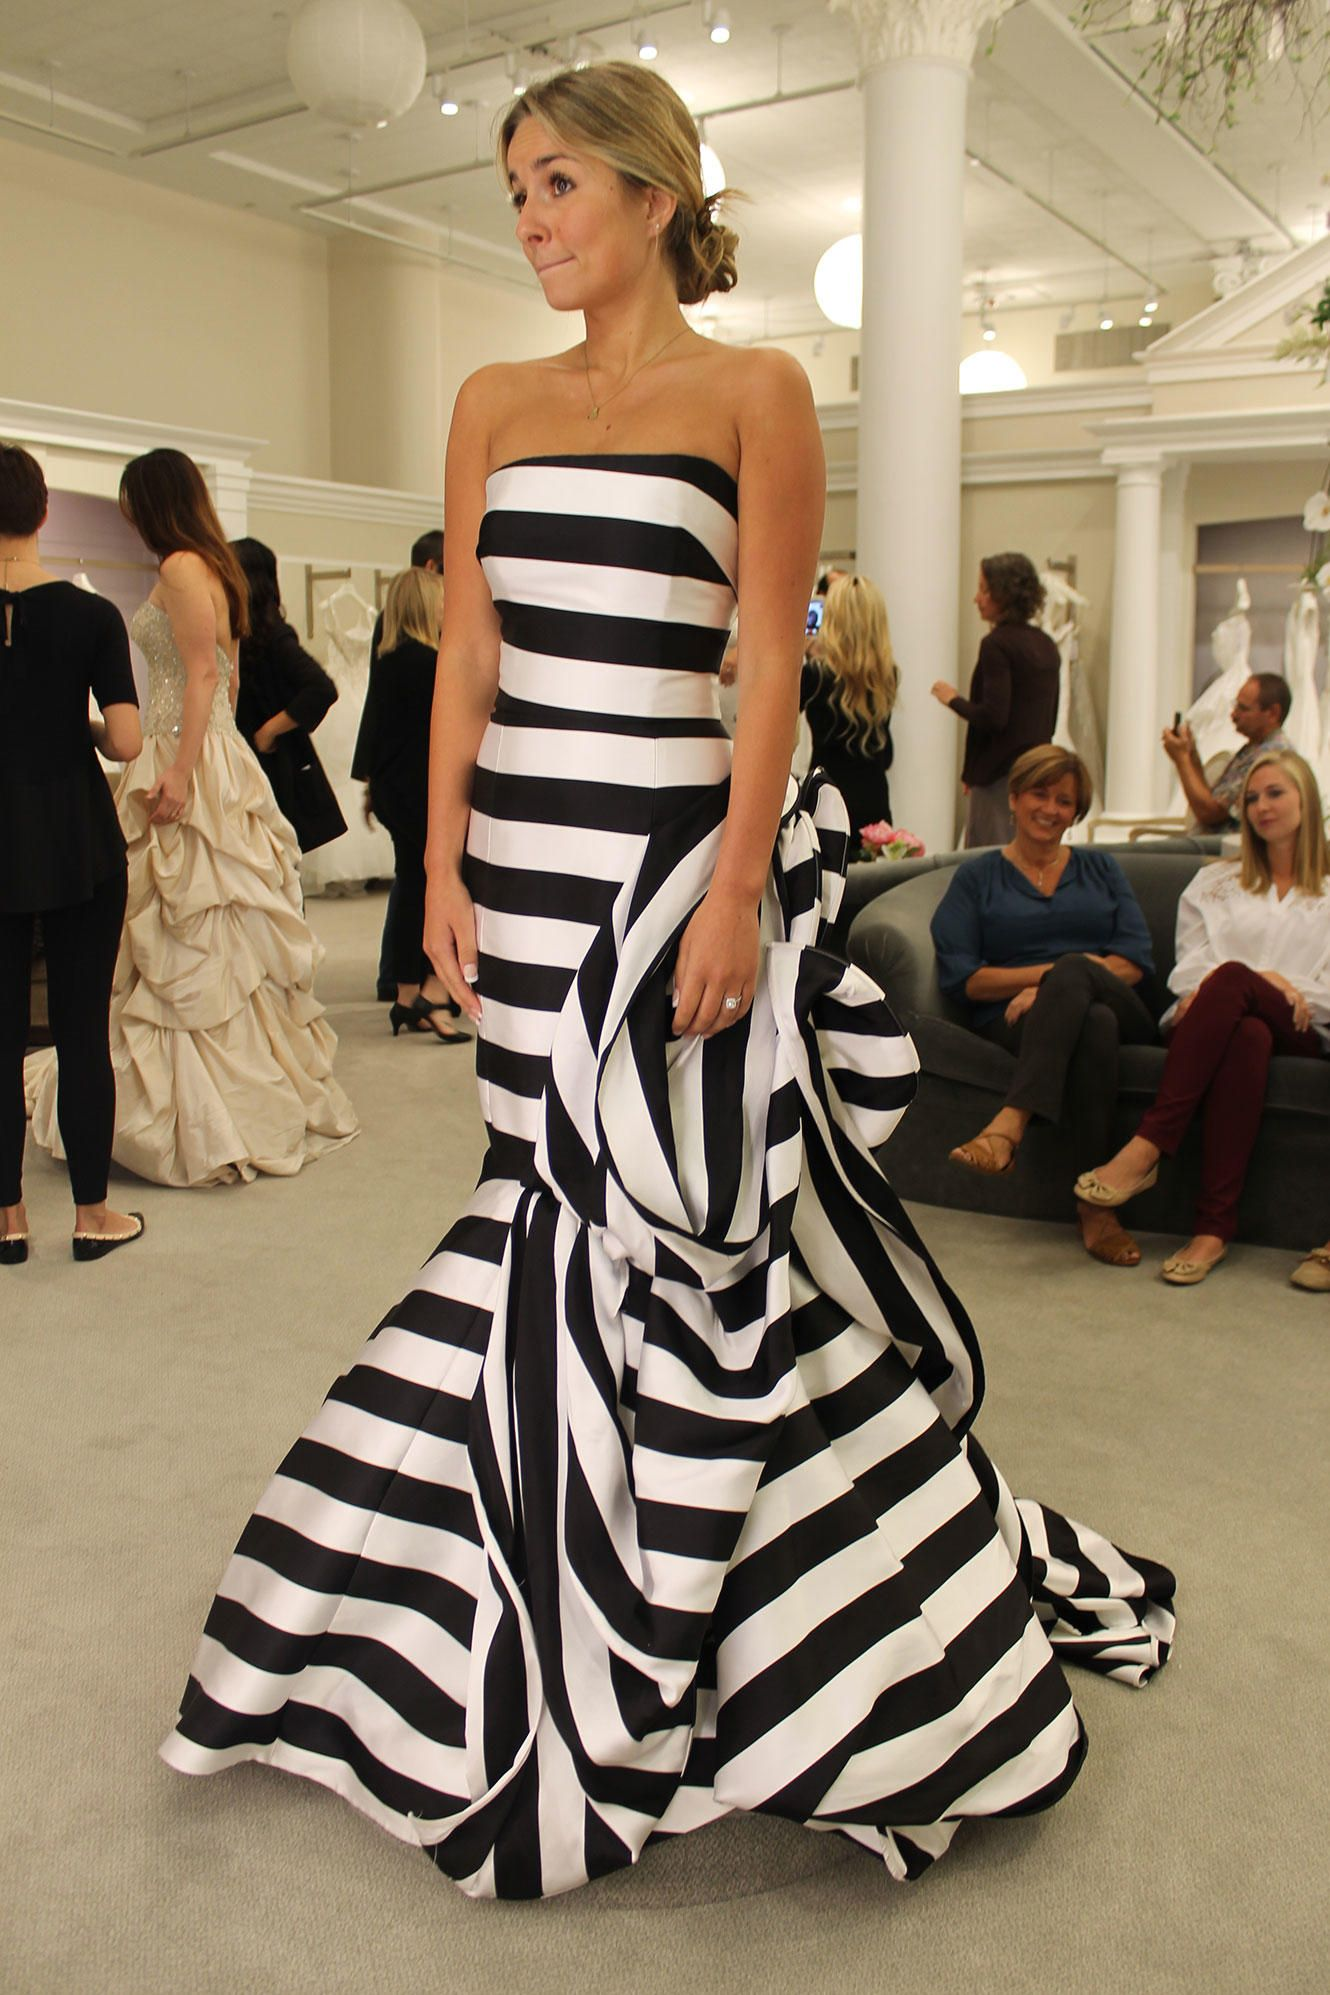 Tlc Official Site Striped Wedding Dress Striped Bridesmaid Dresses White Striped Dress